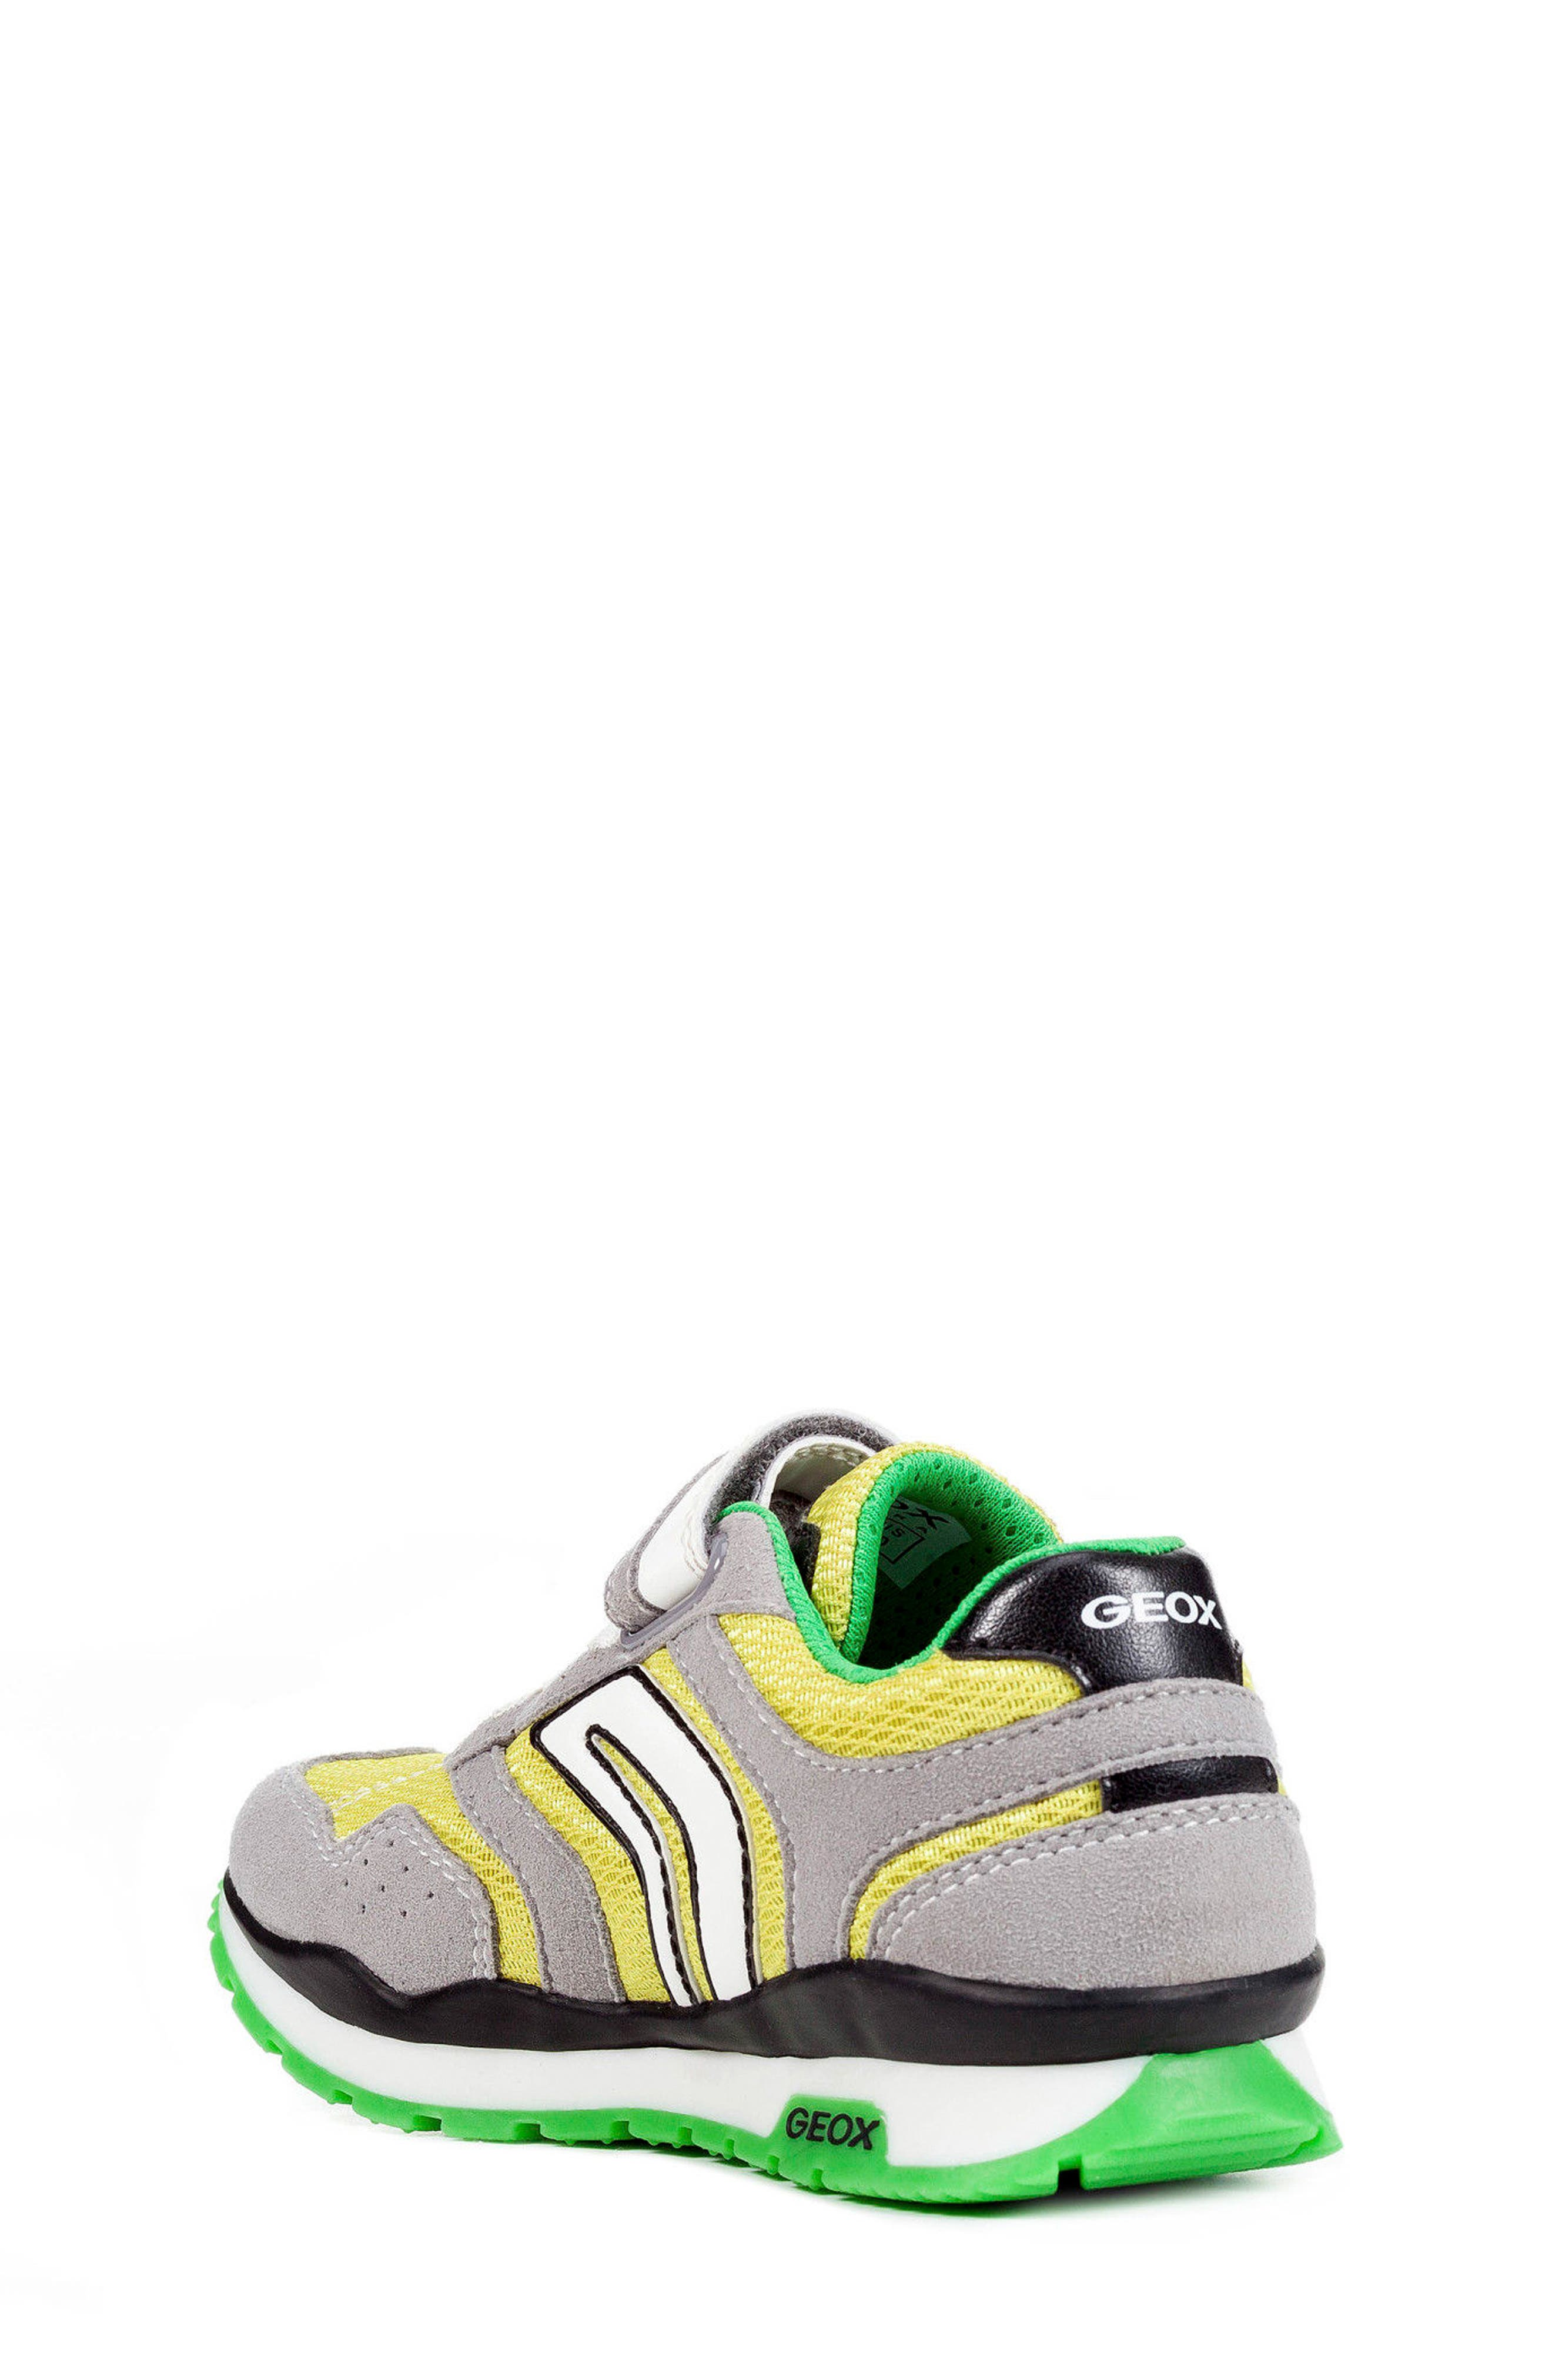 Pavel Low Top Sneaker,                             Alternate thumbnail 2, color,                             GREY/ LIME